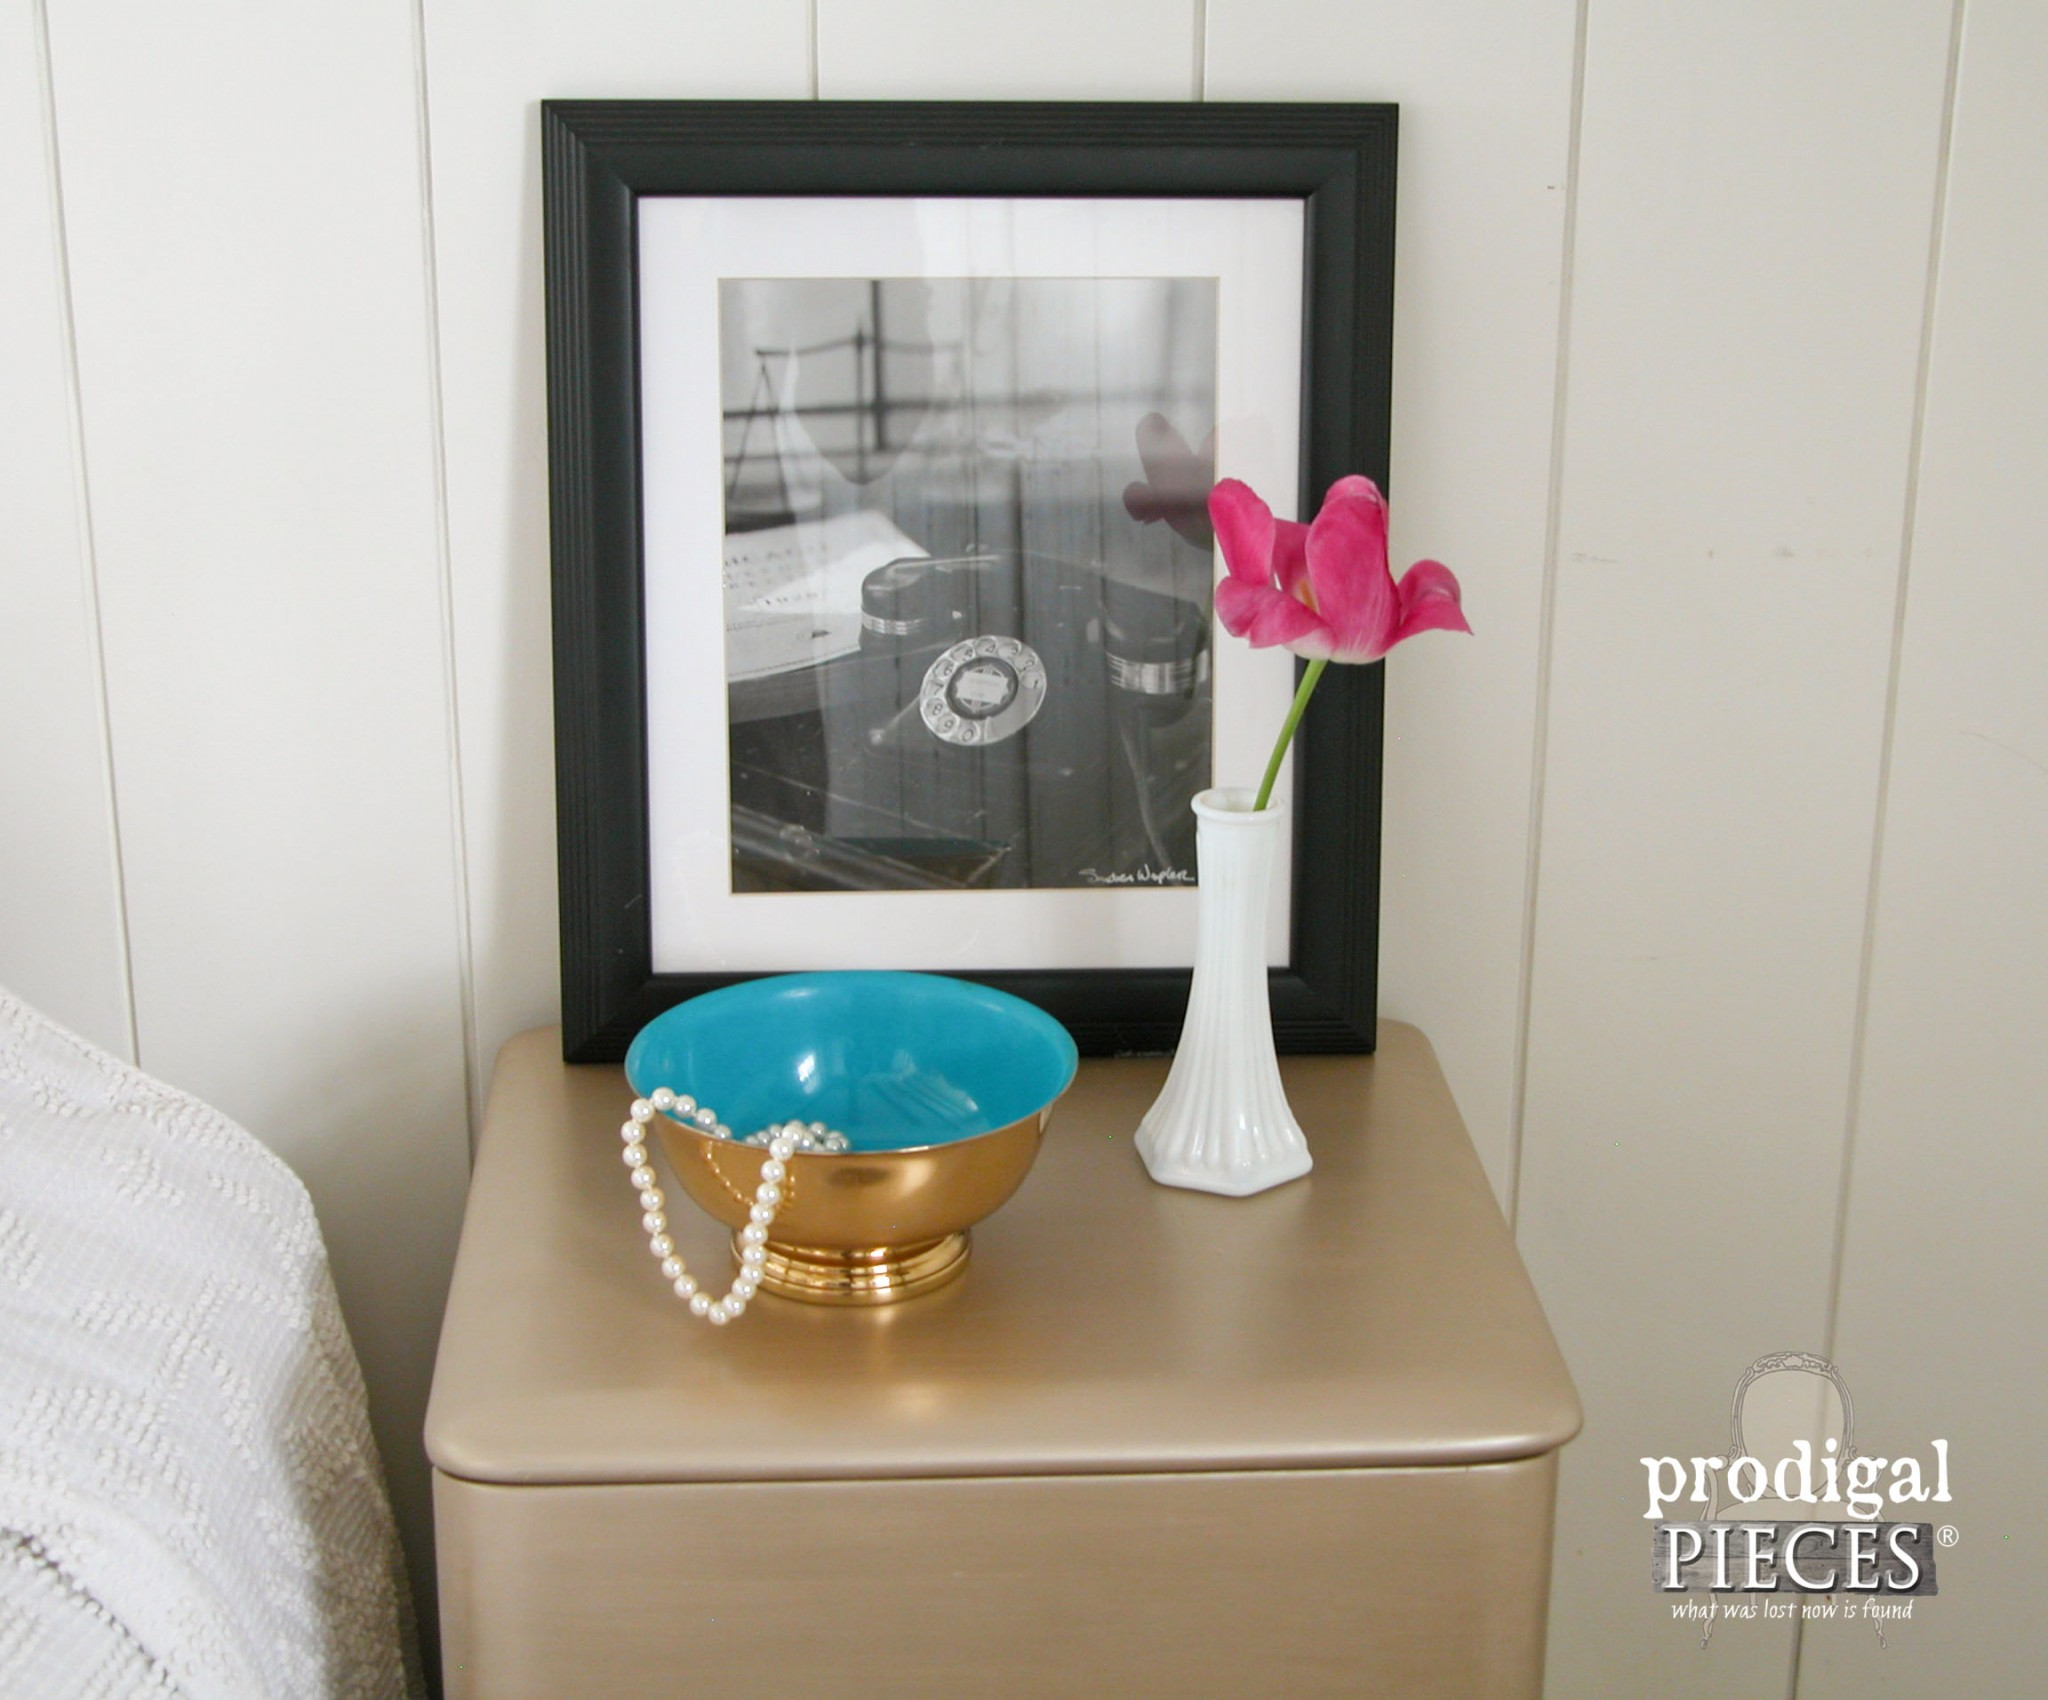 Top of Art Deco Nightstand with Vintage Finds by Prodigal Pieces | www.prodigalpieces.com